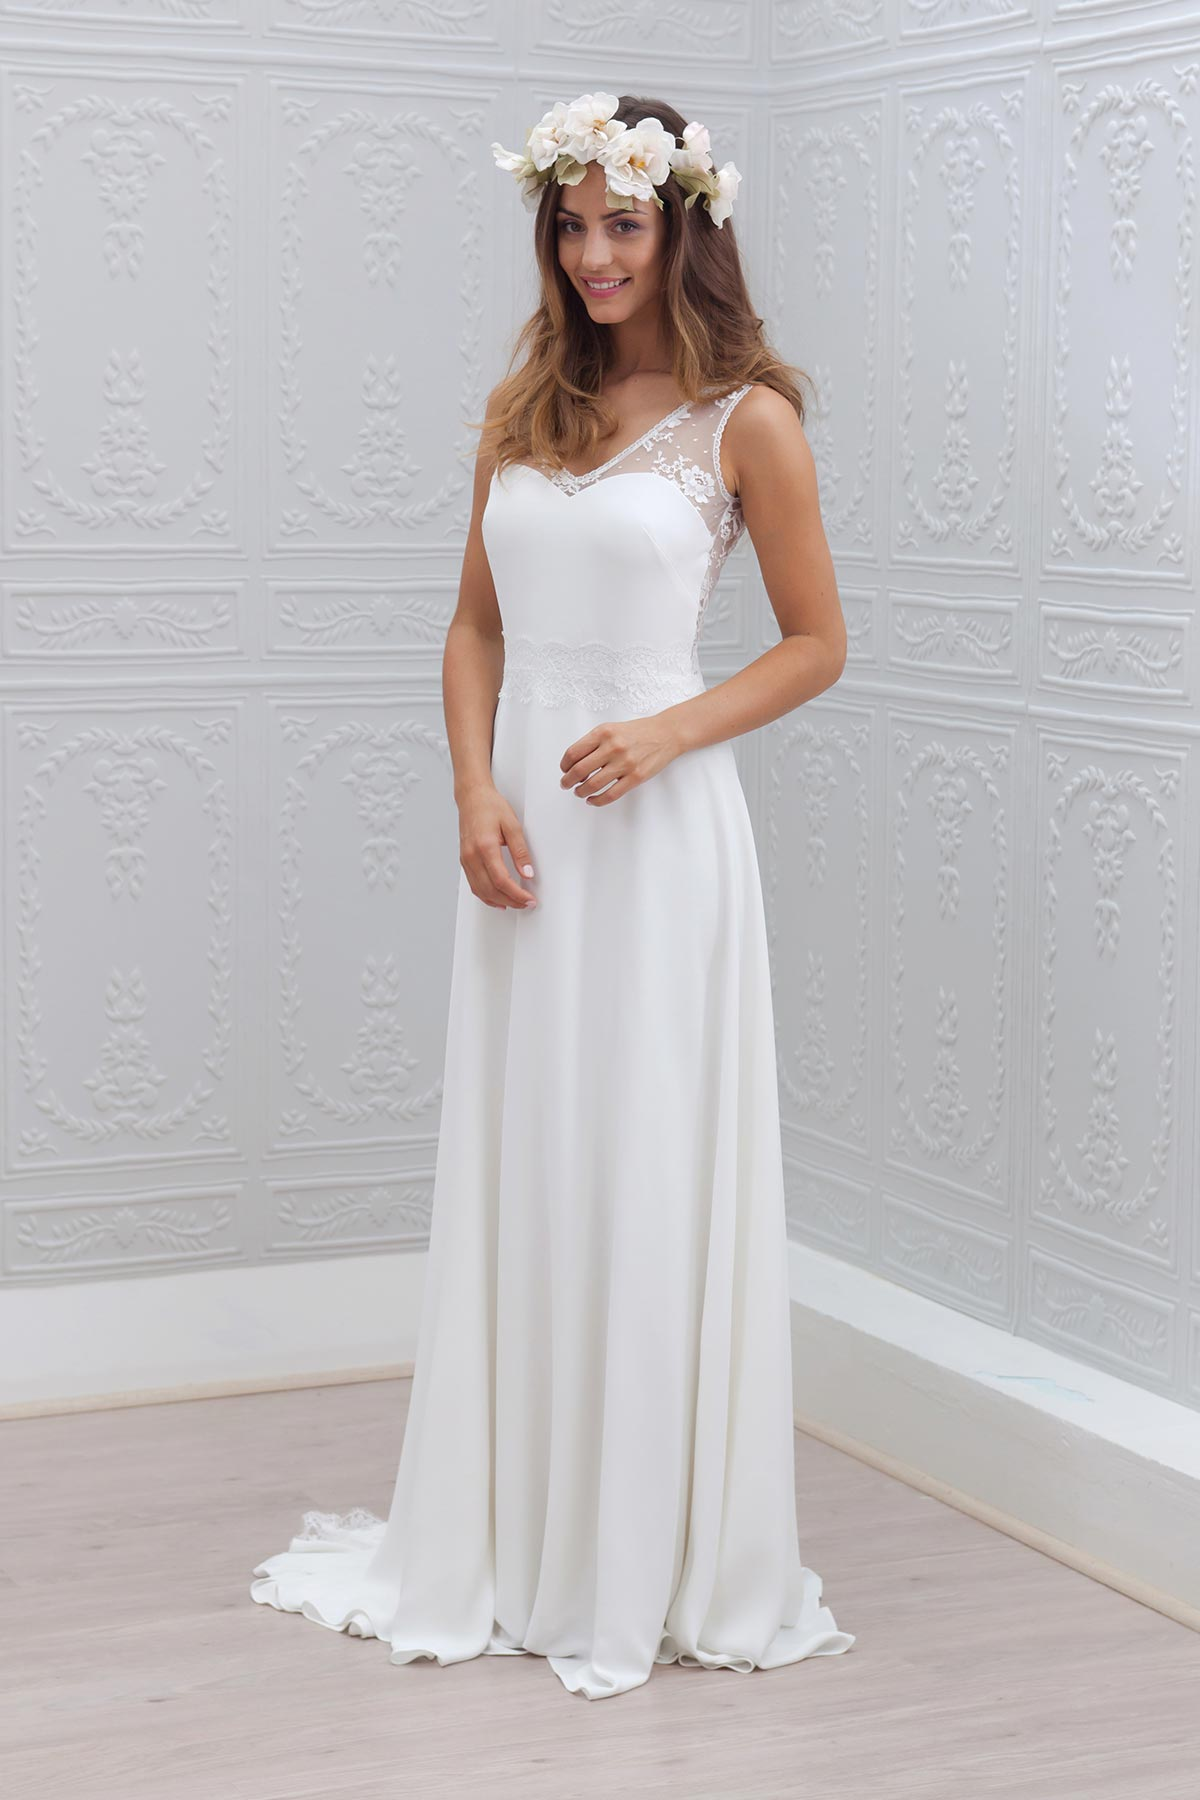 Robe de mariée Ella par Marie Laporte collection 2015 - Robes ...